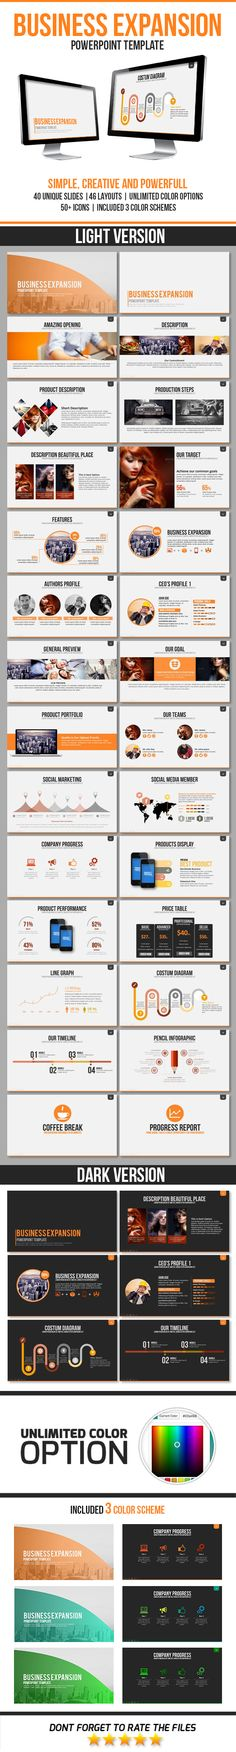 Best Powerpoint Templates - The 5 Best Presentation Template - powerpoint presentation specialist sample resume